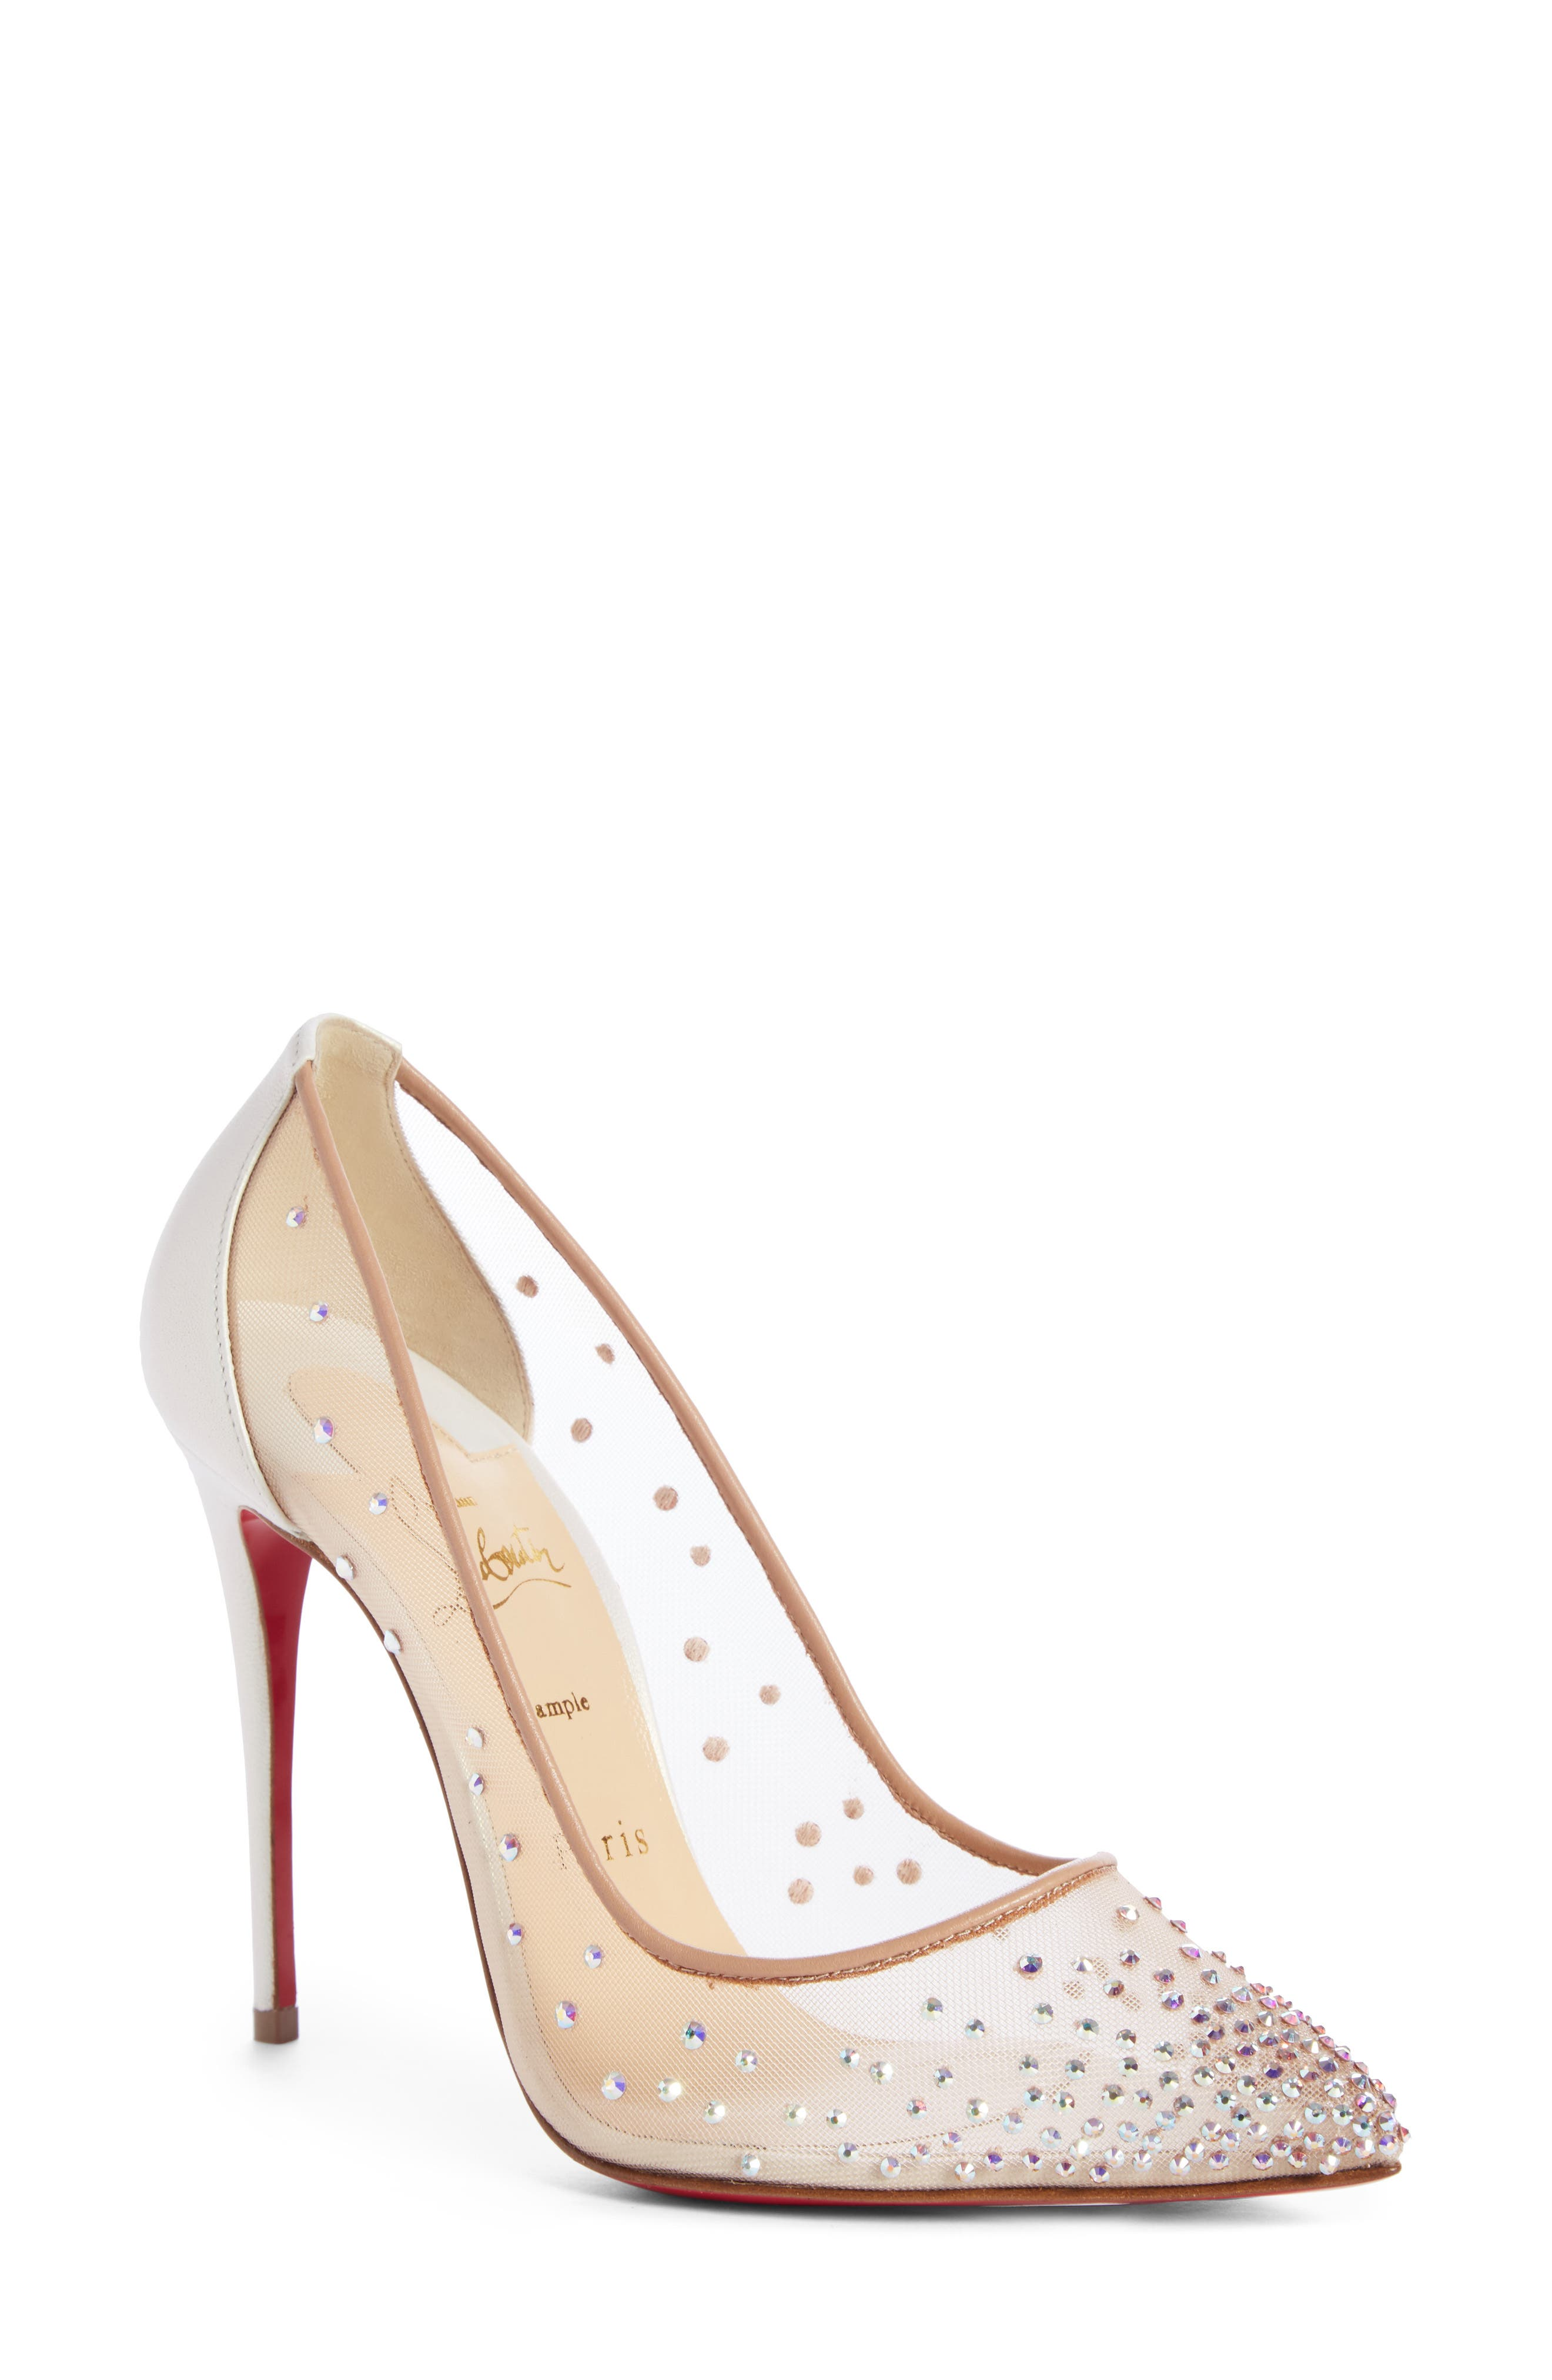 4ed9323a86f1 Christian Louboutin Designer Collections  Spring 2017 Fashion ...